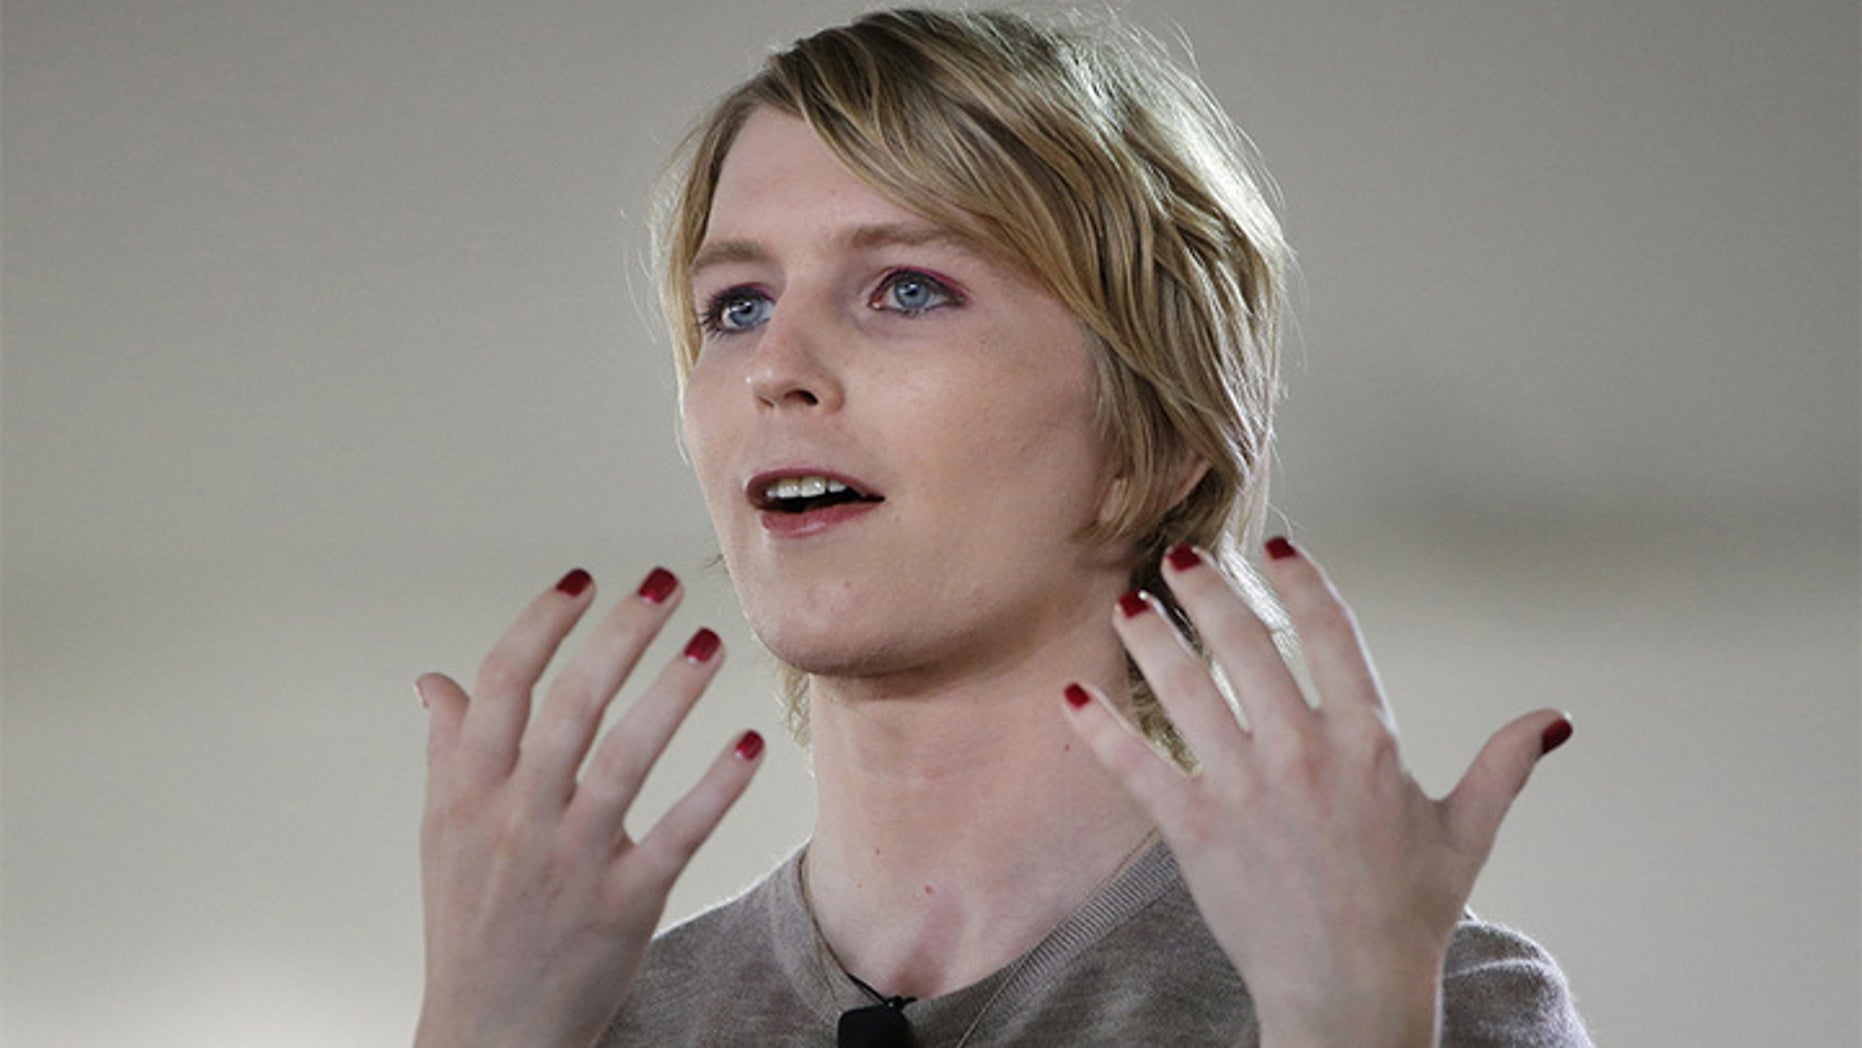 """Chelsea Manning said the """"surveillance systems, the cameras or the police presence"""" have made the U.S. seem less free."""